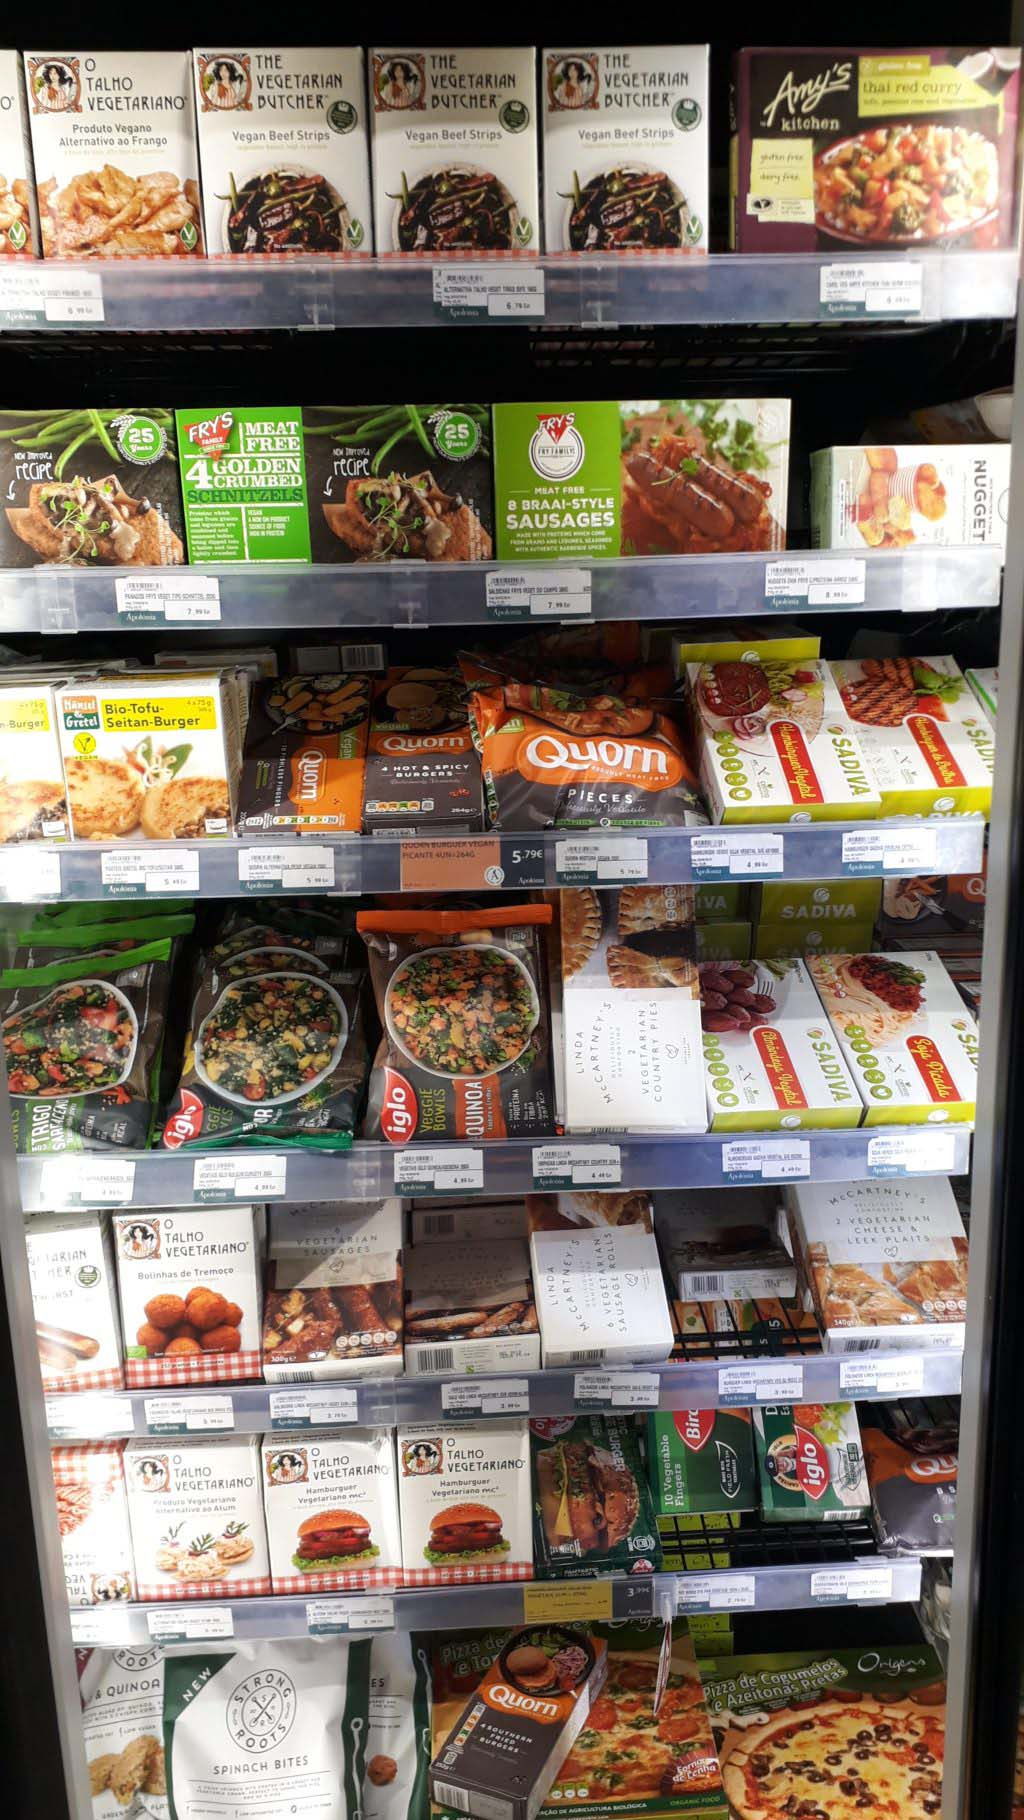 Various ready meals from international brands like the Vegetarian Butcher, Amy's, Fry's, Quorn and inglo